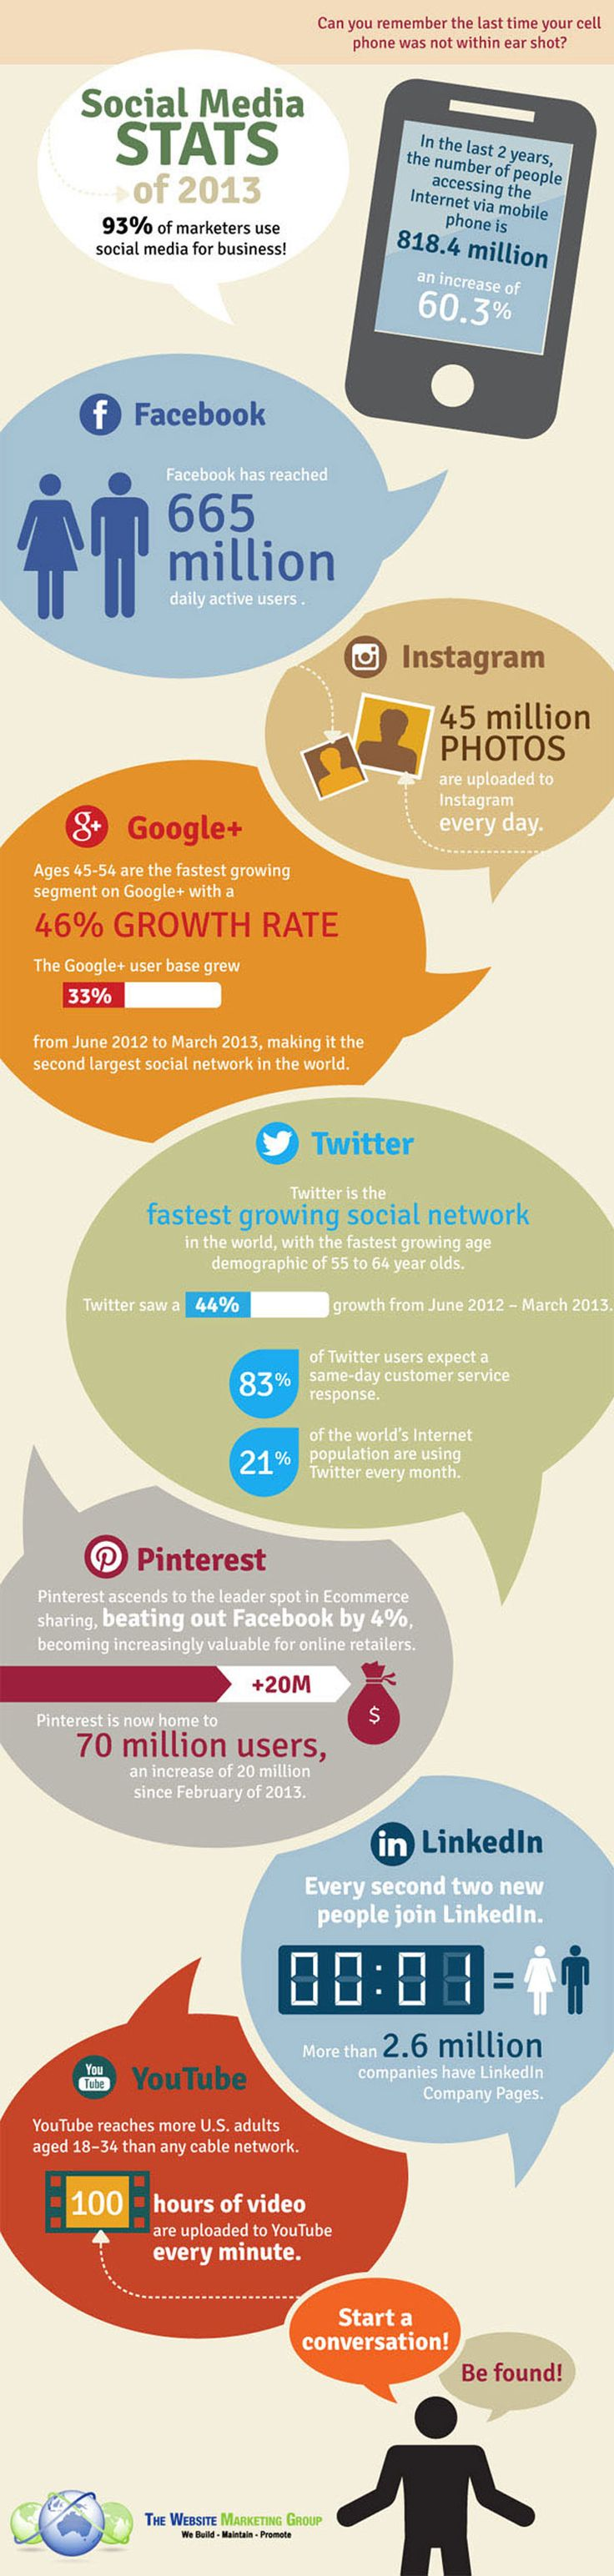 93% of marketers use social media for business.  What do you think is the reasoning behind the 7% that choose not to?